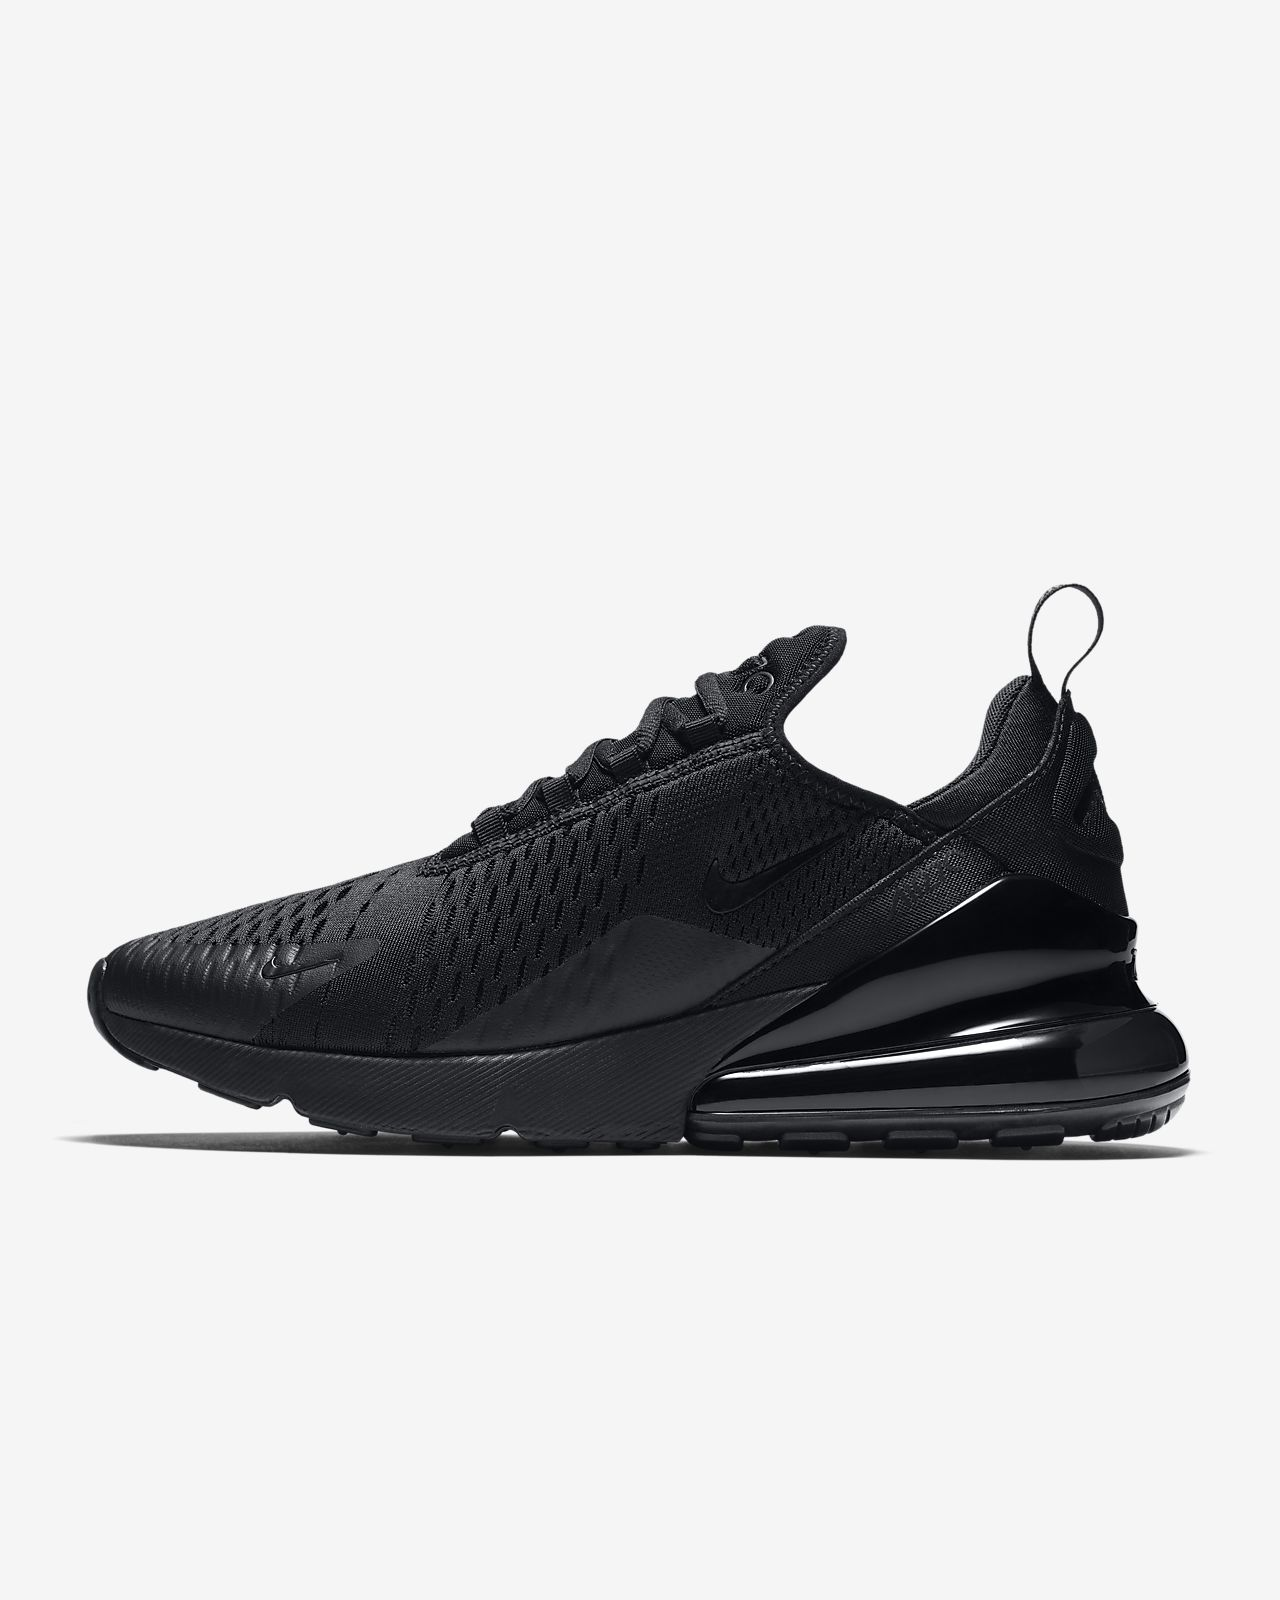 441013b03fc8 Nike Air Max 270 Men s Shoe. Nike.com AU